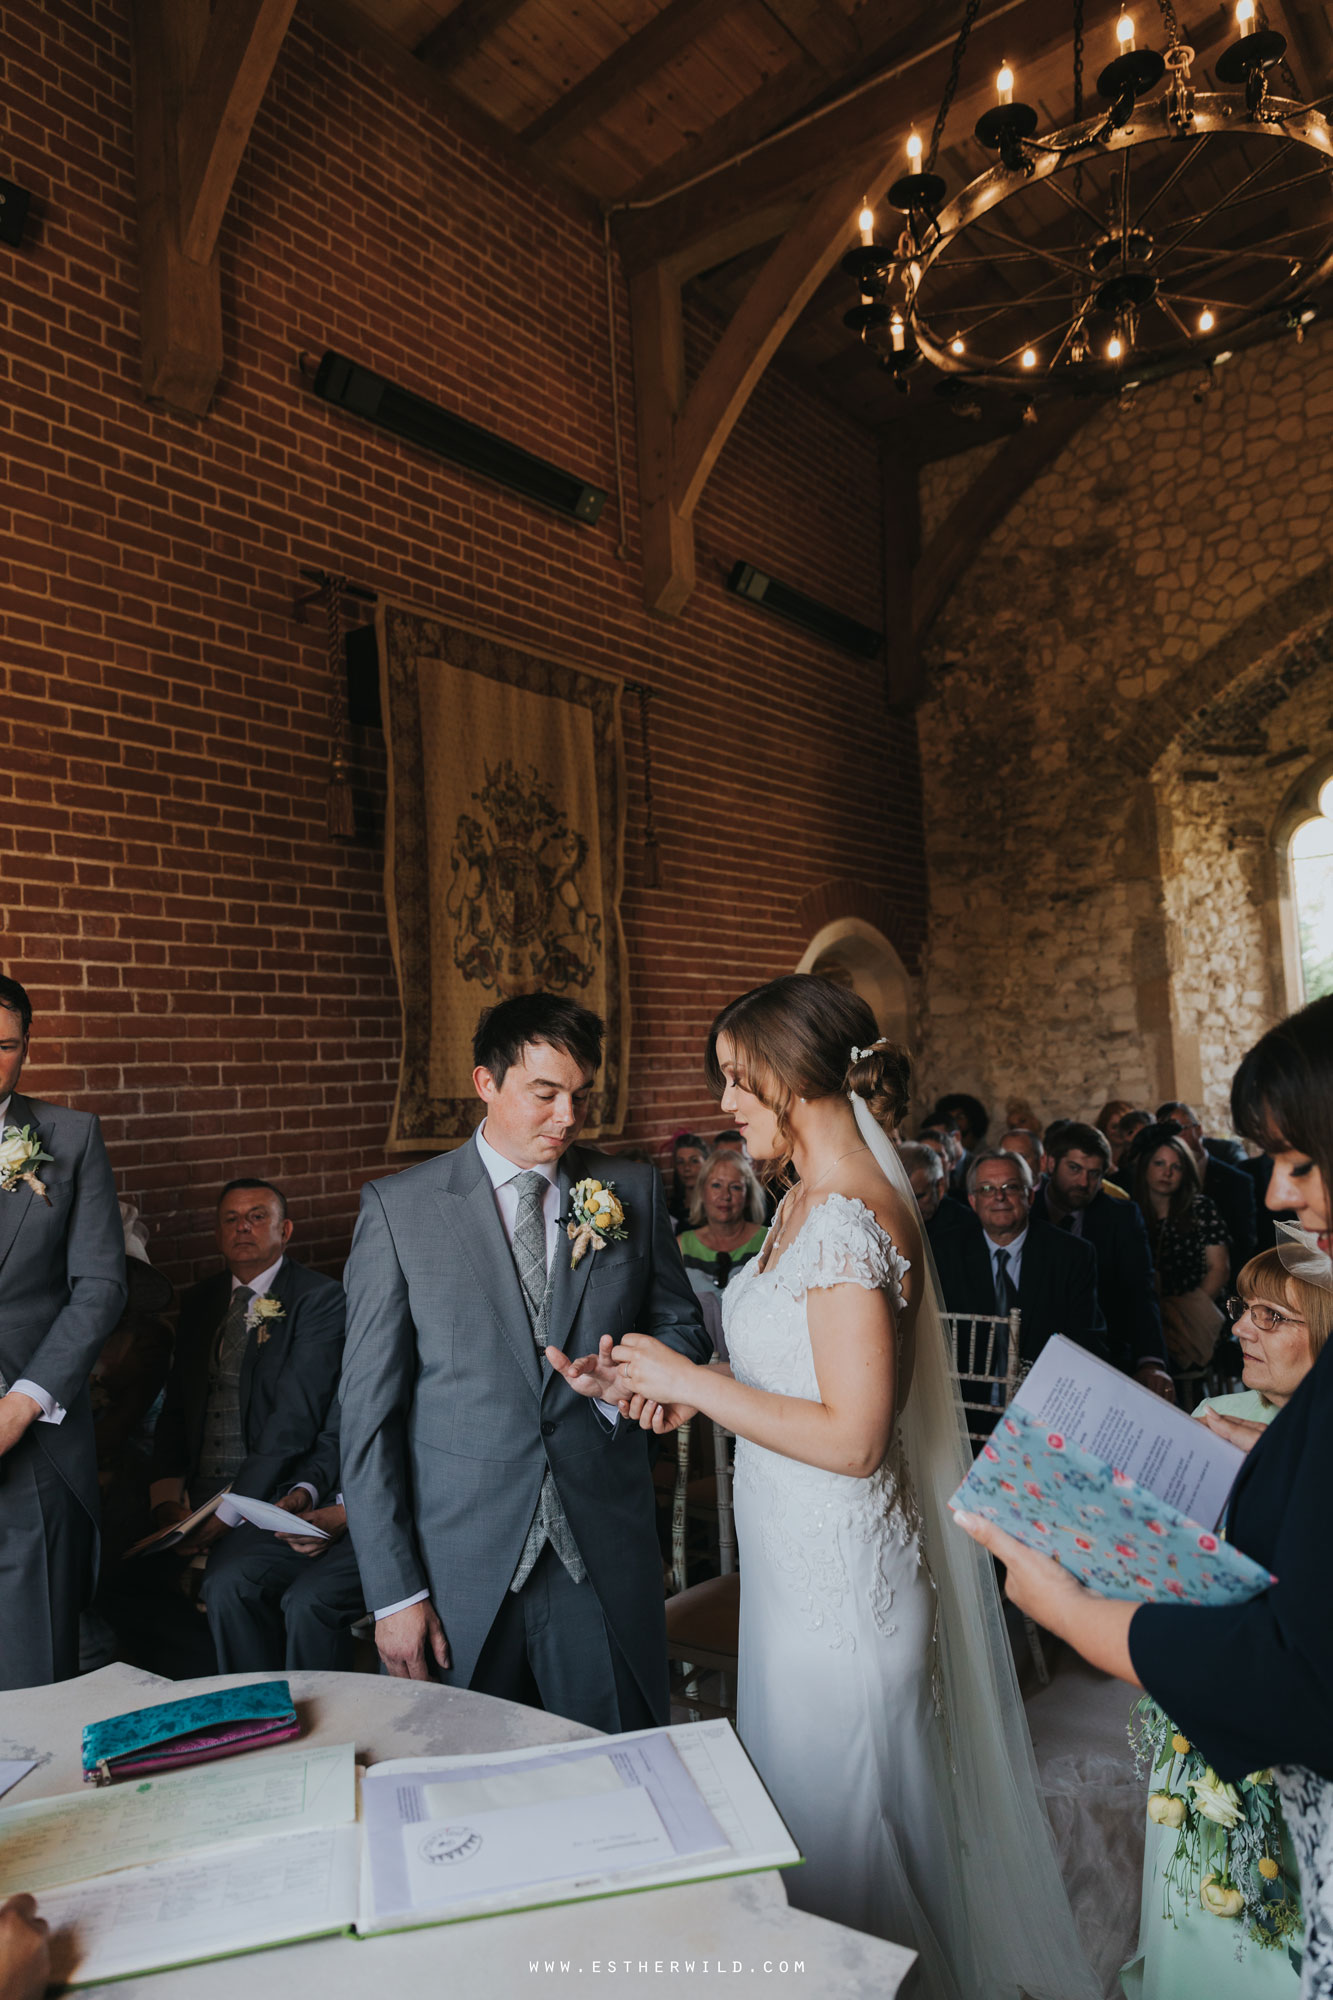 Pentney_Abbey_Wedding_Kings_Lynn_Norfolk_Esther_Wild_Wedding_Photography_IMG_0603.jpg